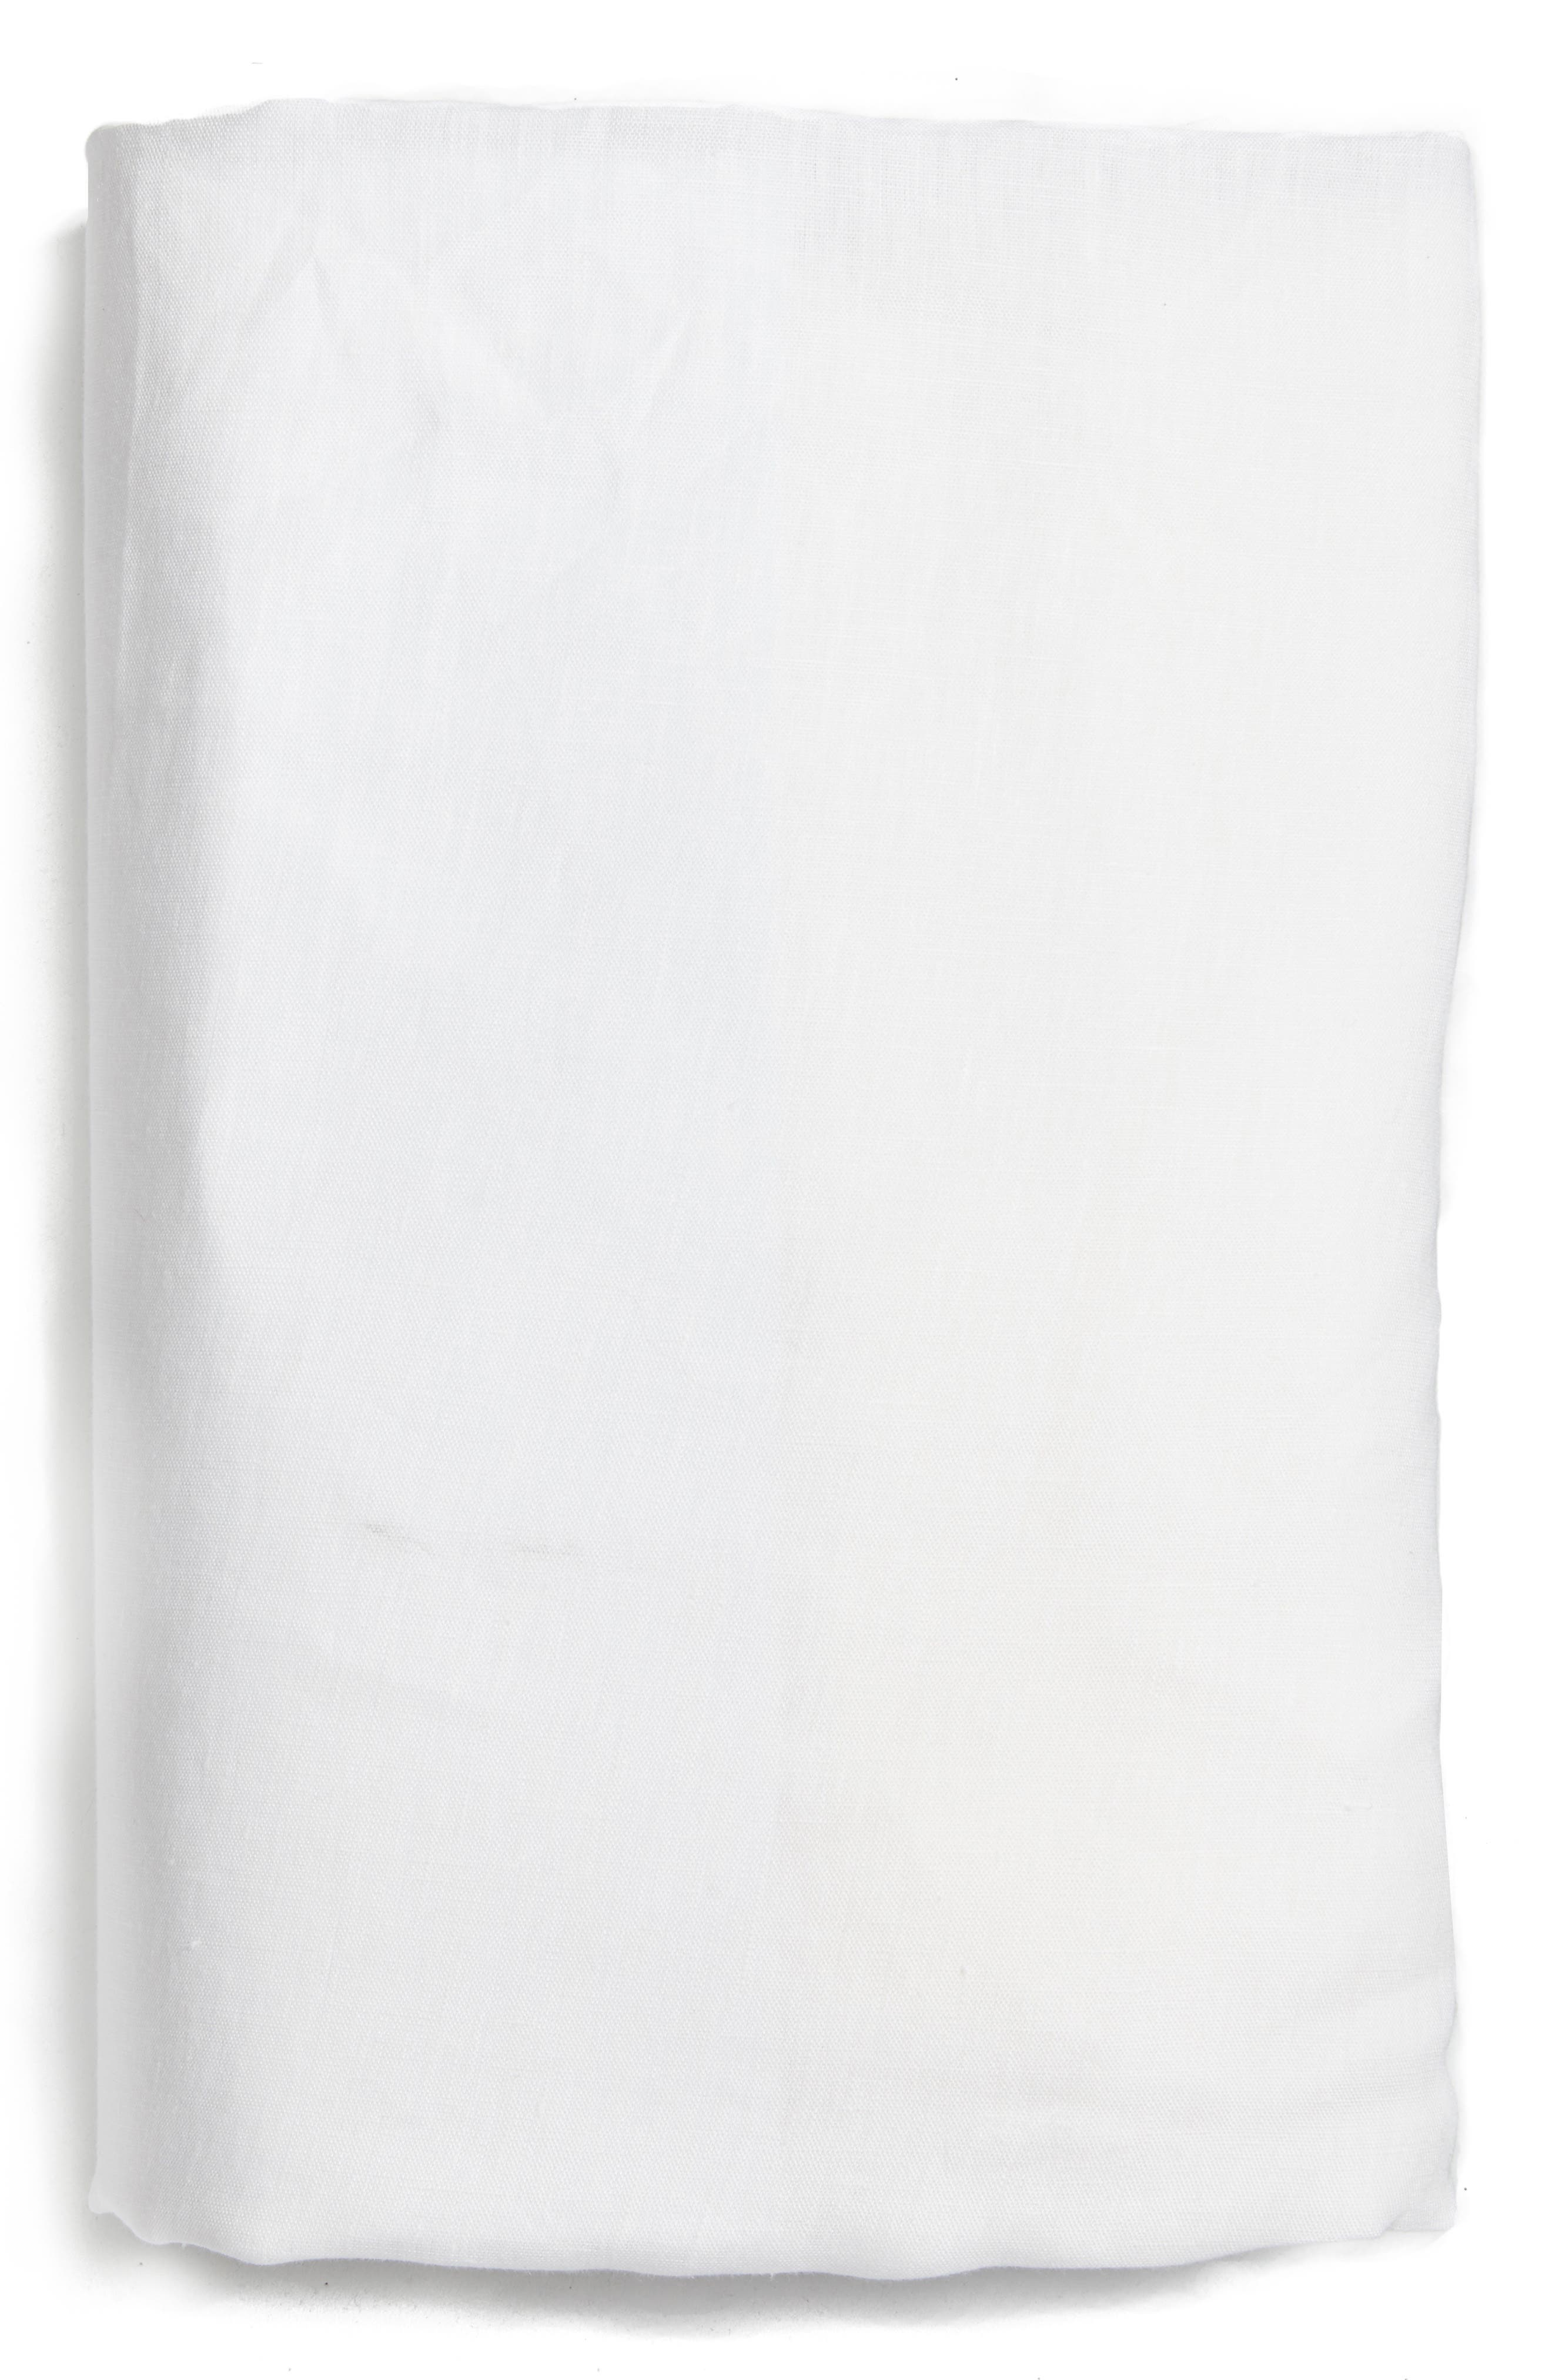 Alternate Image 1 Selected - Calvin Klein Home Solo Linen Fitted Sheet